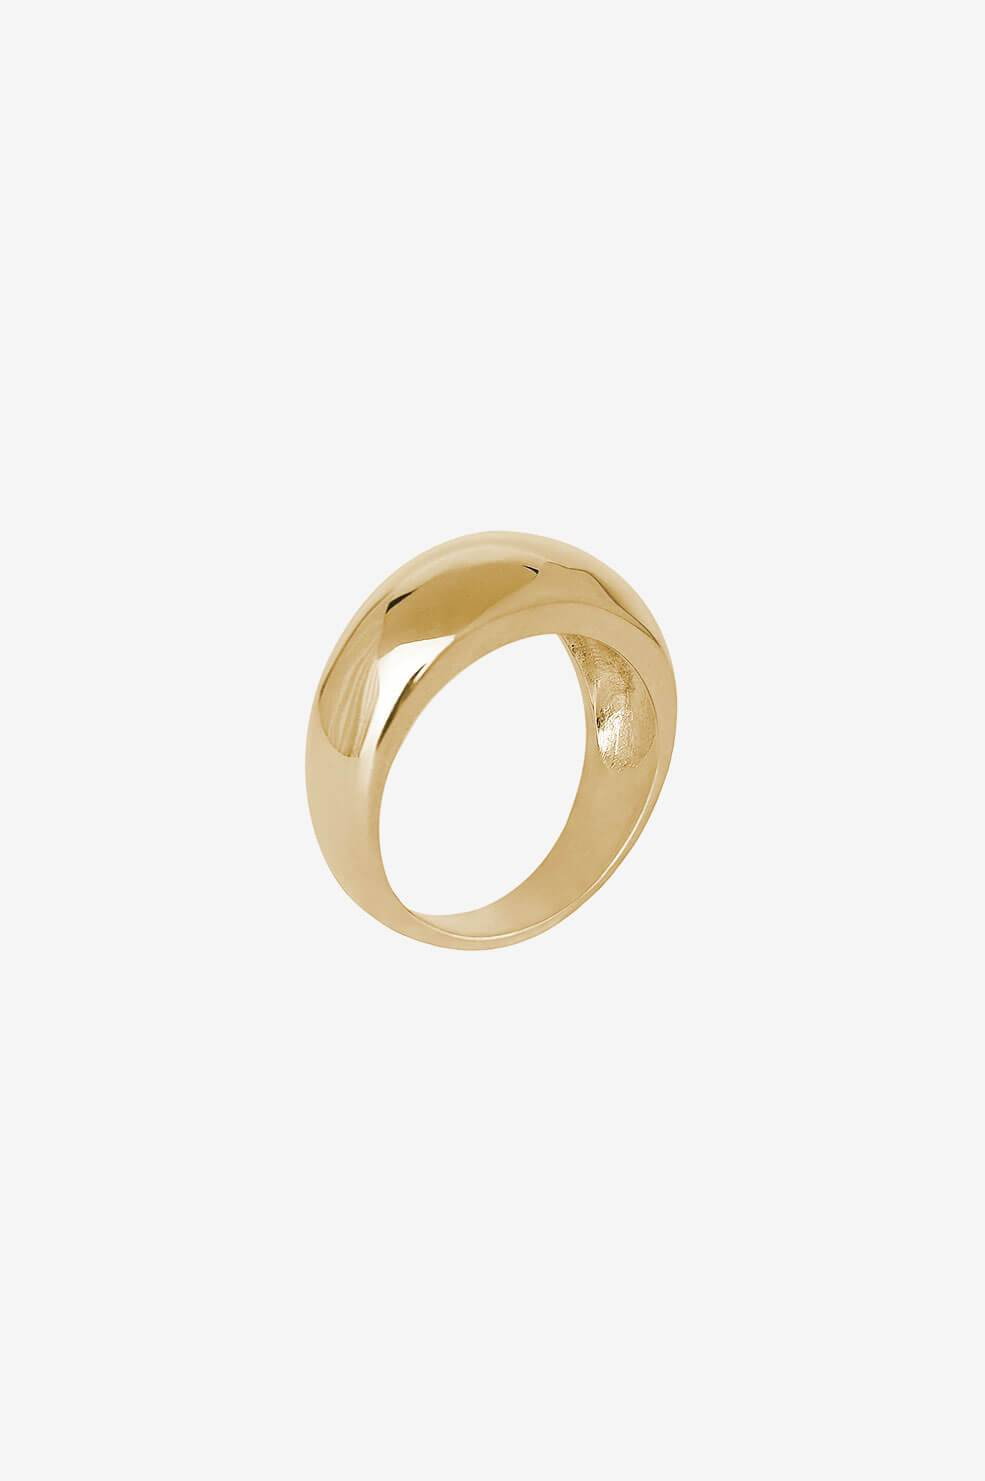 ANINE BING Dome Ring in Gold  - Gold - Size: 5